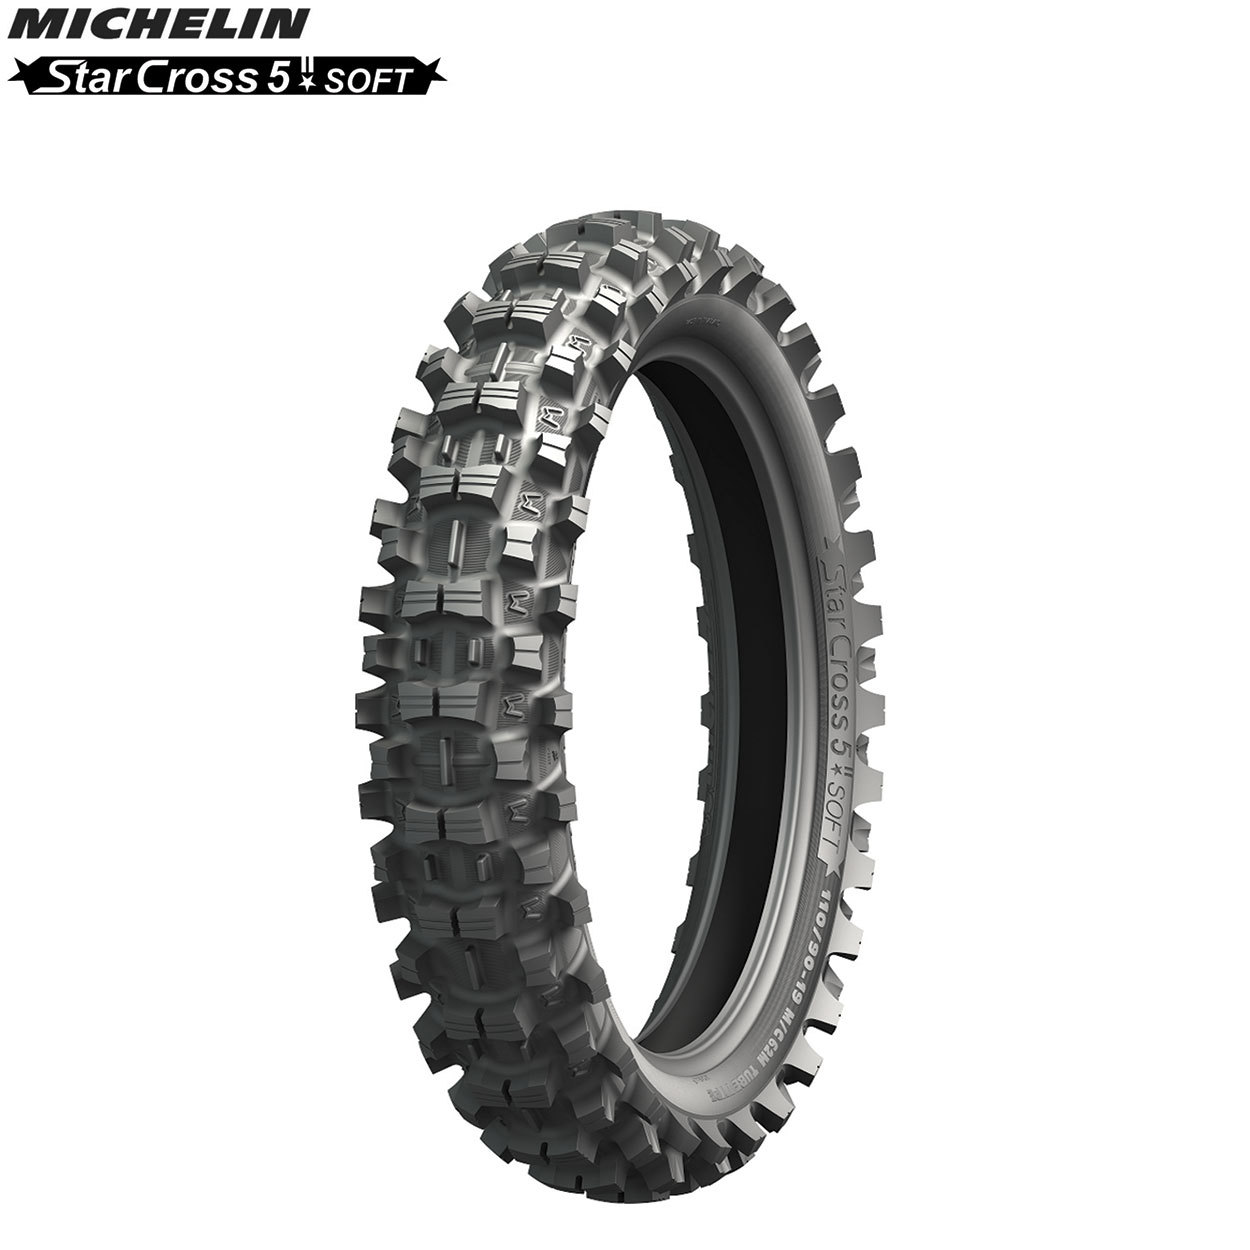 michelin offroad rear tyre starcross 5  mx soft terrain